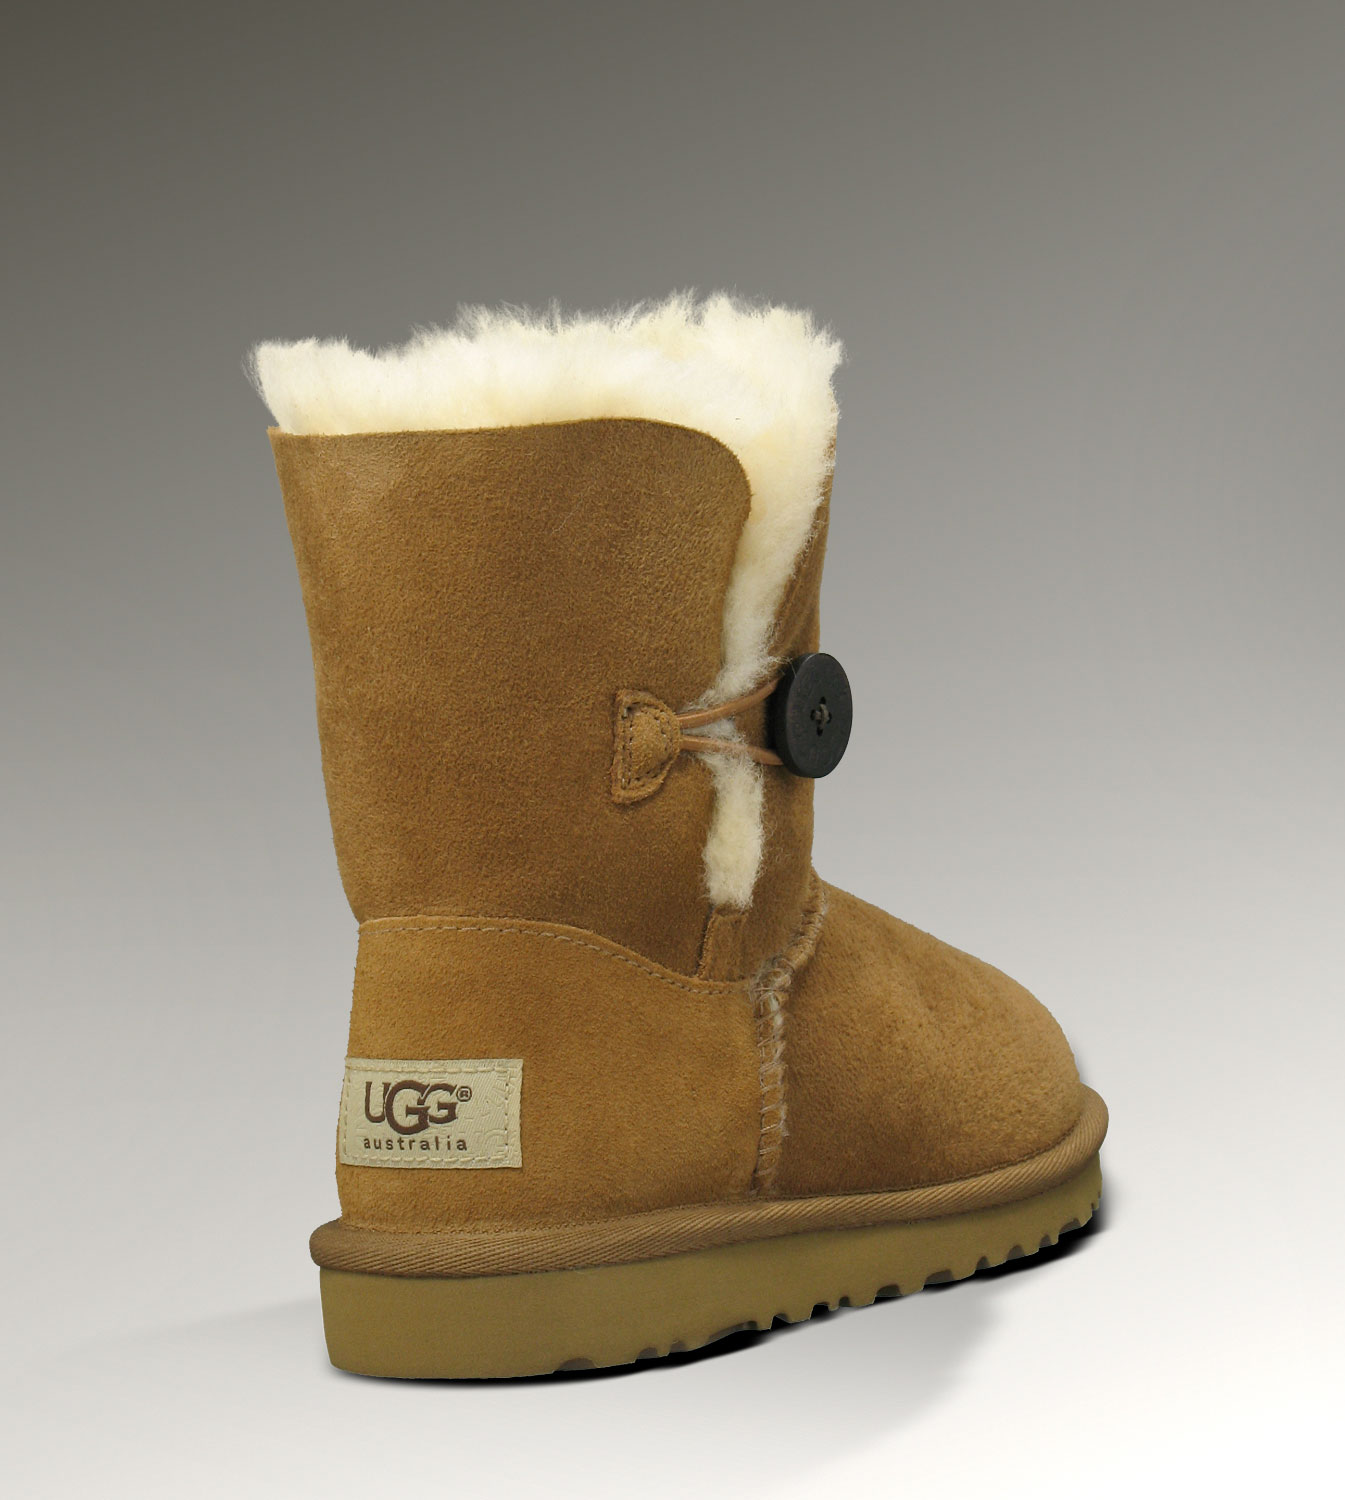 UGG Bailey Button 5991 Chestnut Boots